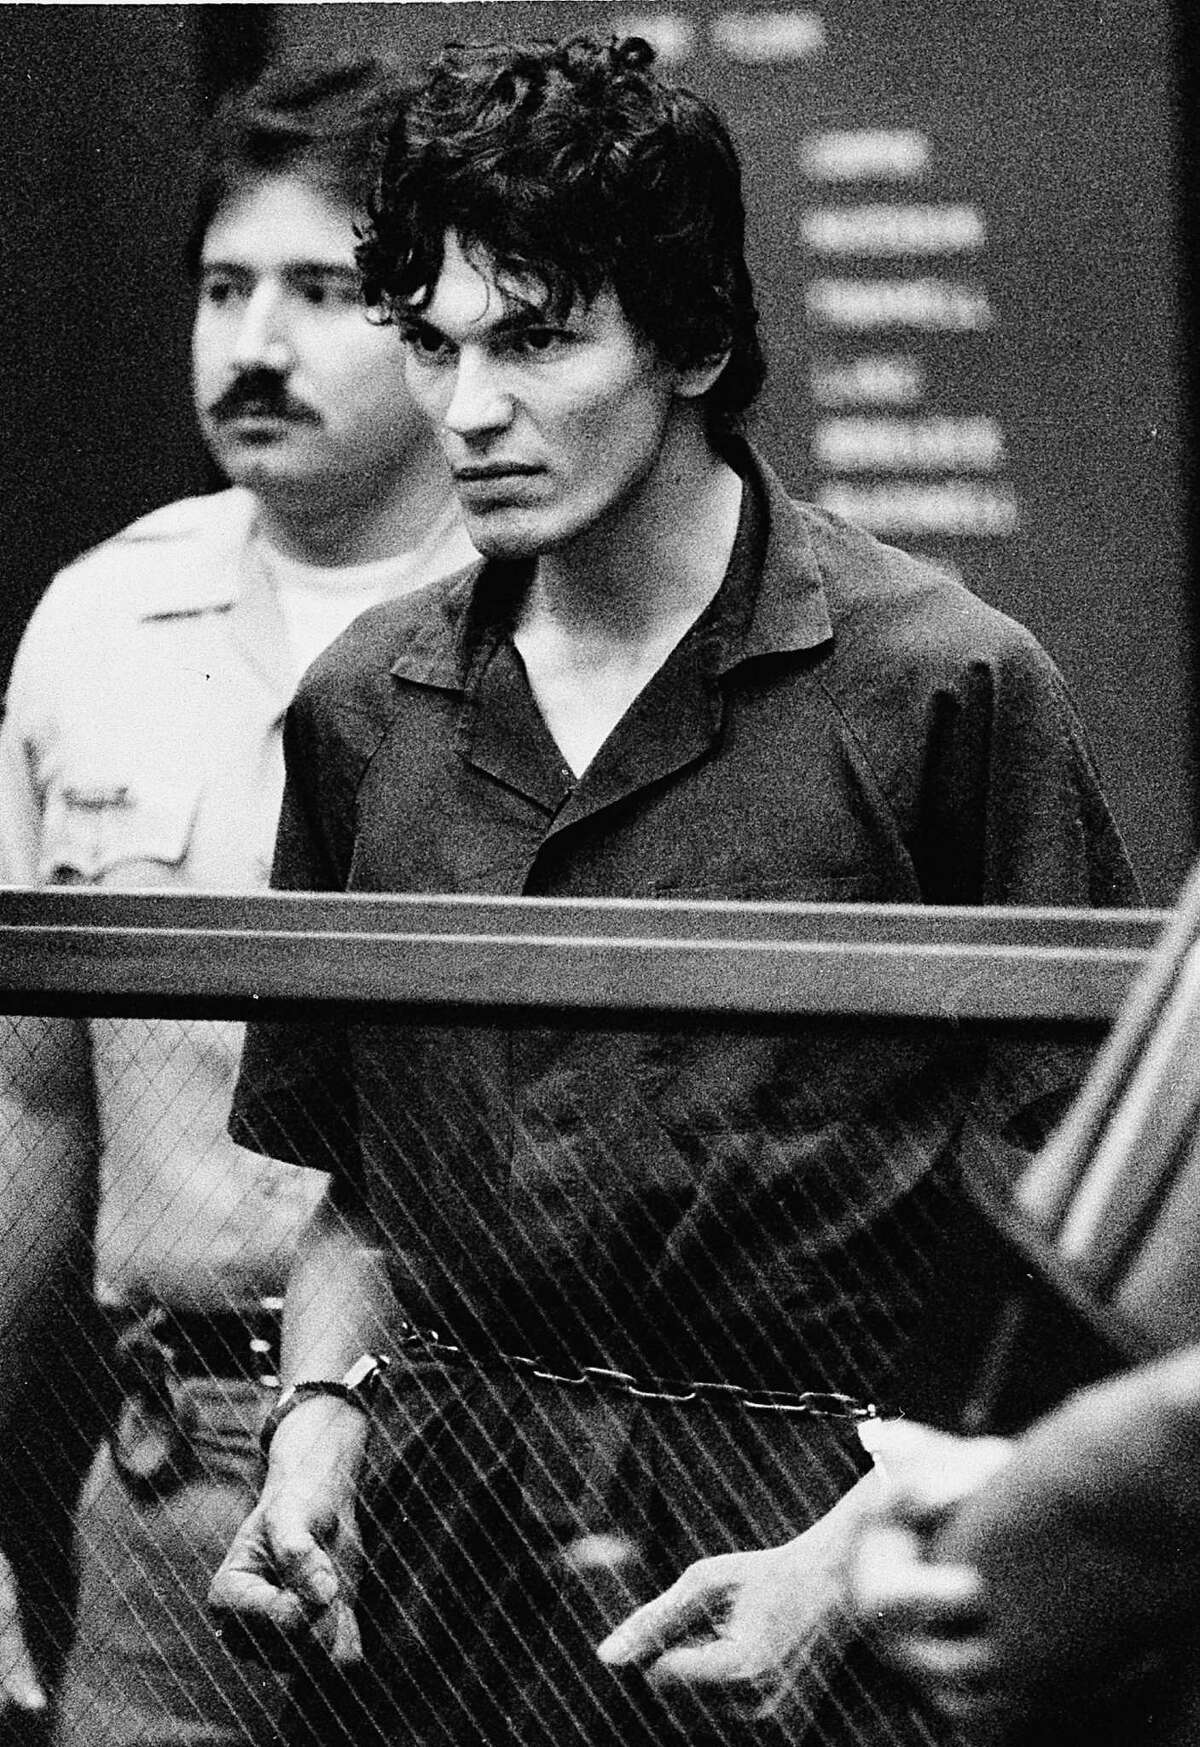 Richard Ramirez Ramirez was convicted in 1989 for 13 counts of murder. His crimes took place in California between 1984 and 1985. He died in 2013 of cancer while on death row.